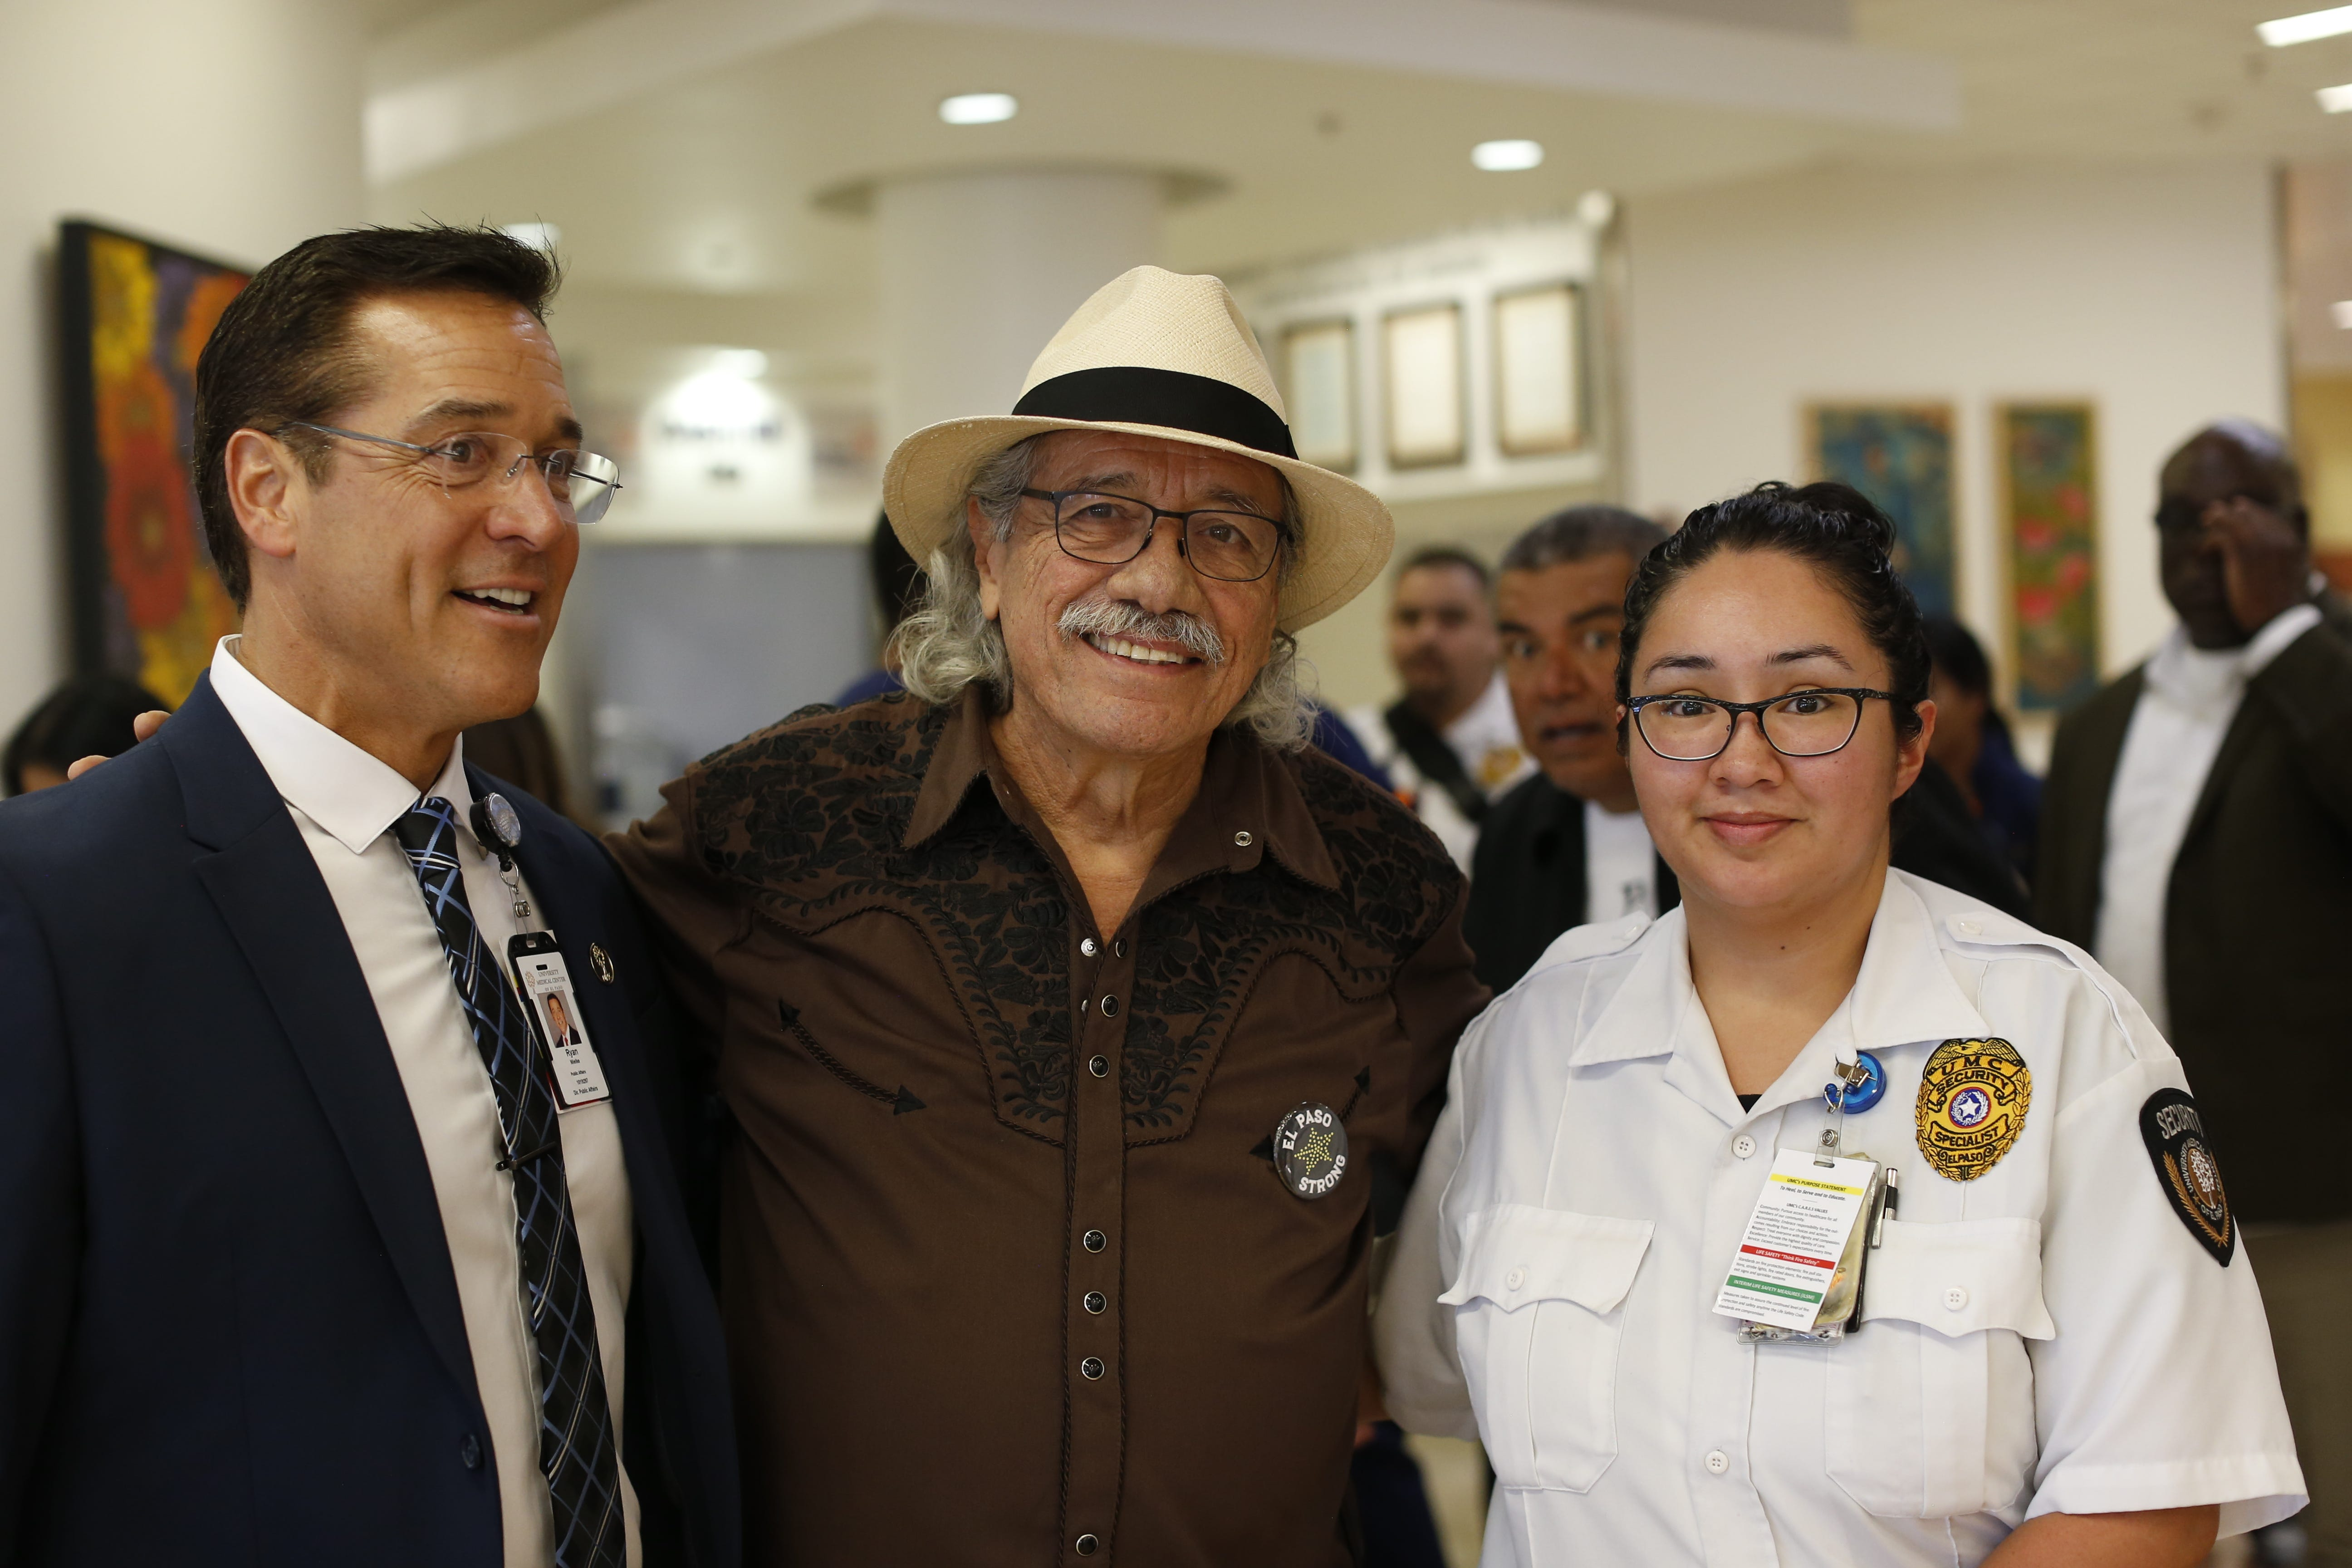 Edward James Olmos poses for a photo with University Medical Center staff with George Lopez popping out from the back.